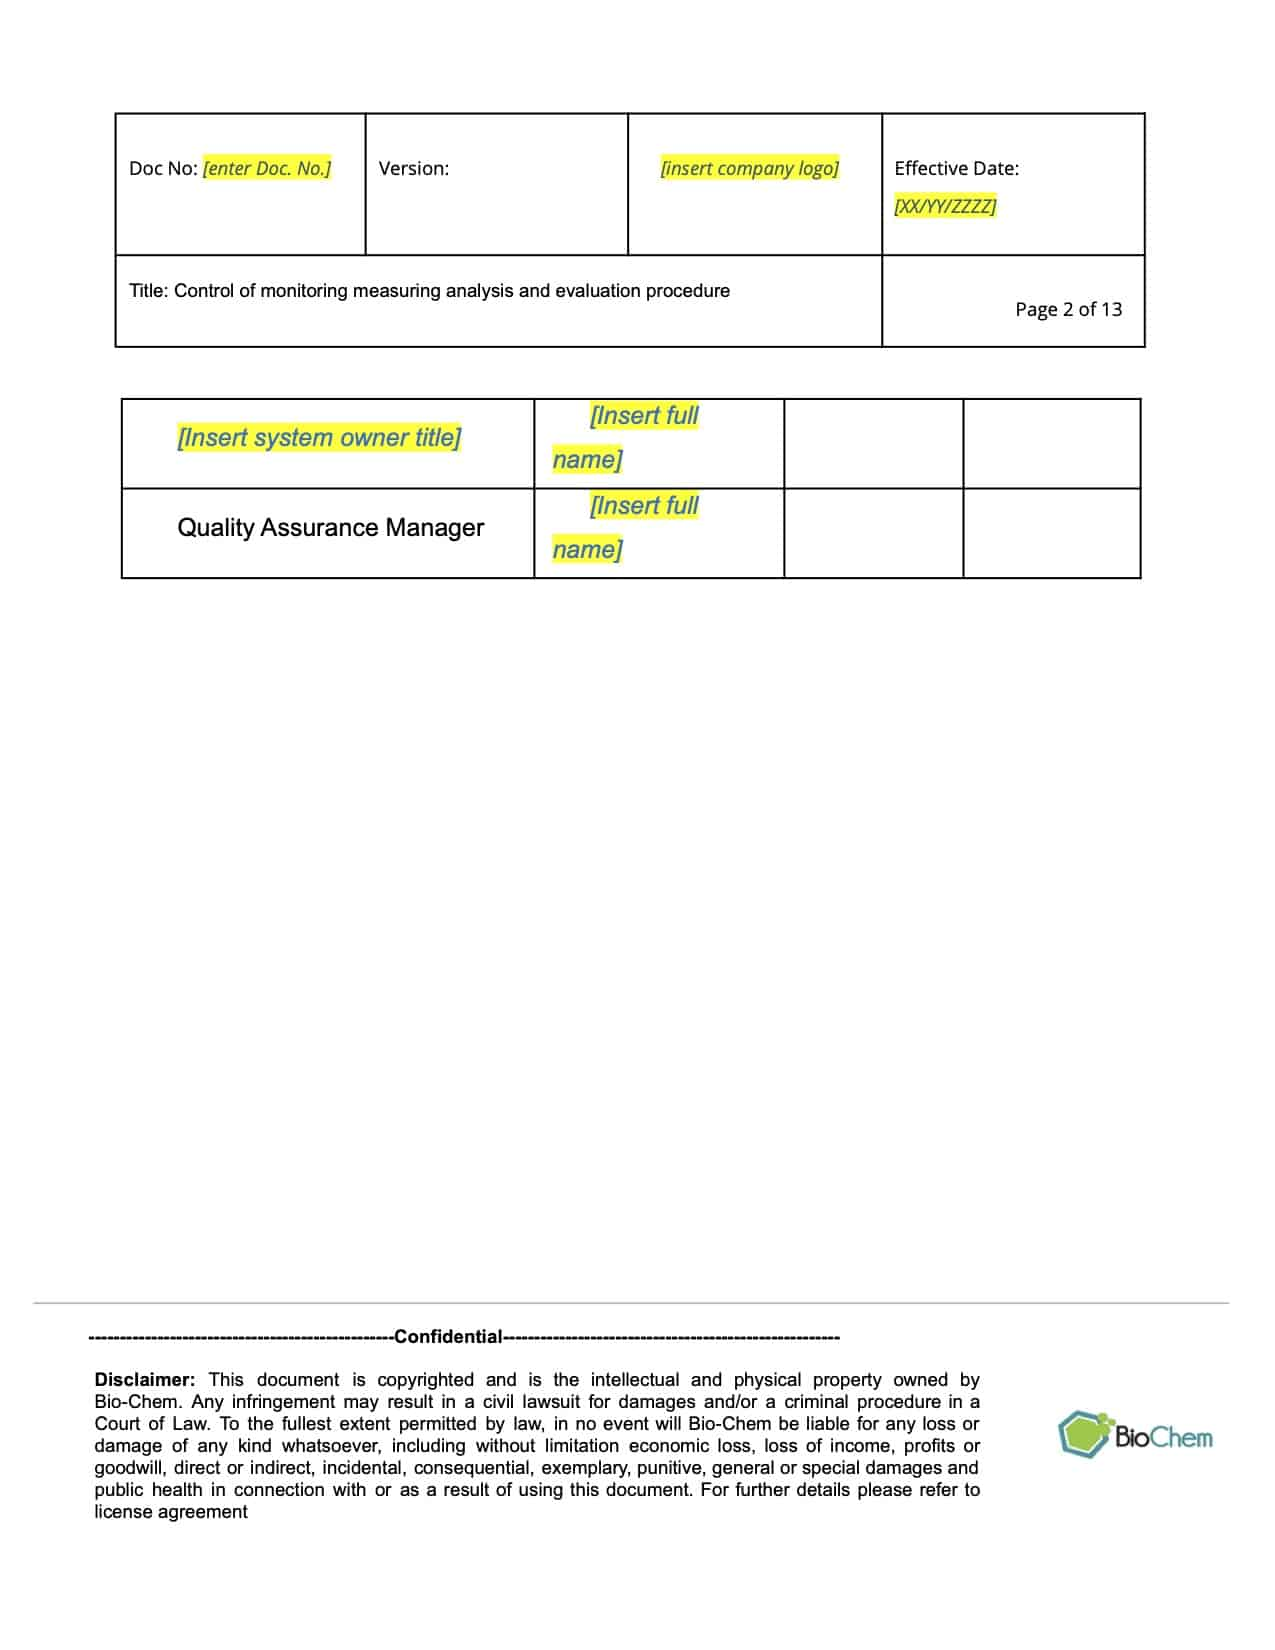 Control of Monitoring Measuring Analysis and Evaluation_BioChem_ISMS_Template preview 2